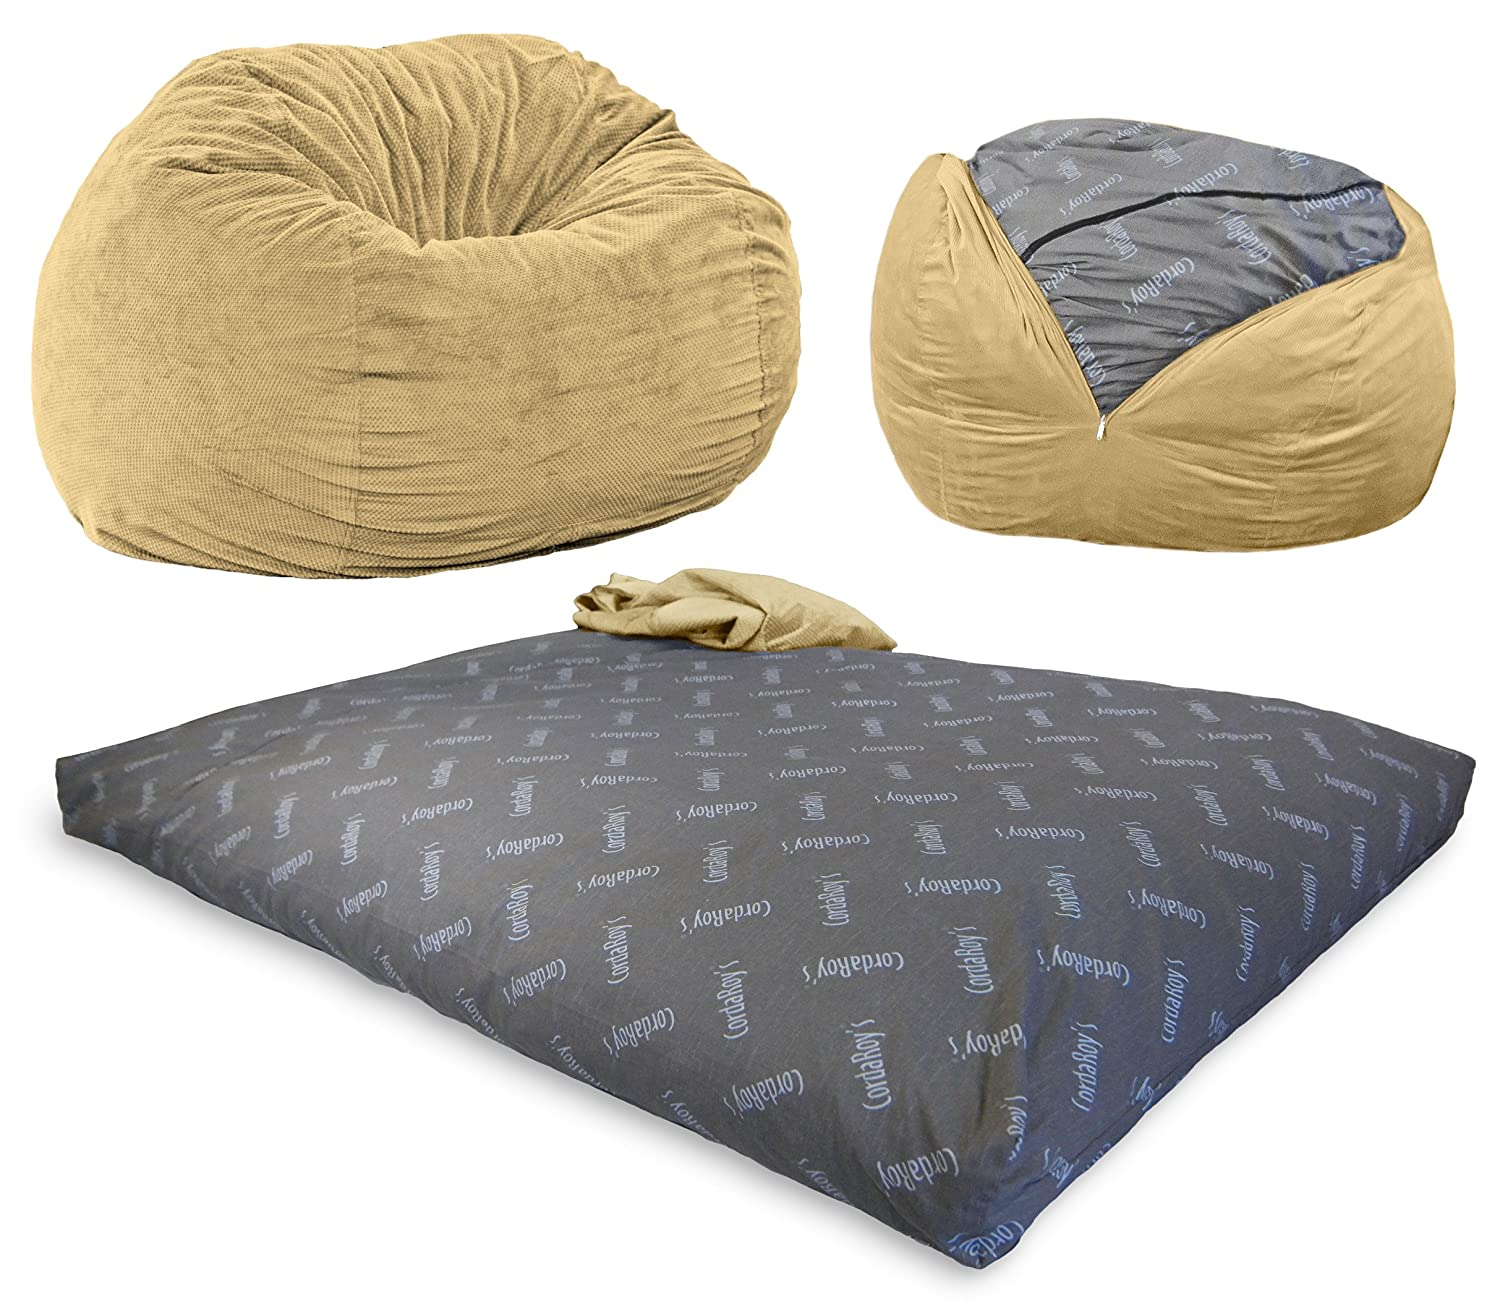 CordaRoy's Chenille Bean Bag Chair, Convertible Chair Folds from Bean Bag to Bed, As Seen on Shark Tank - Tan, Full Size